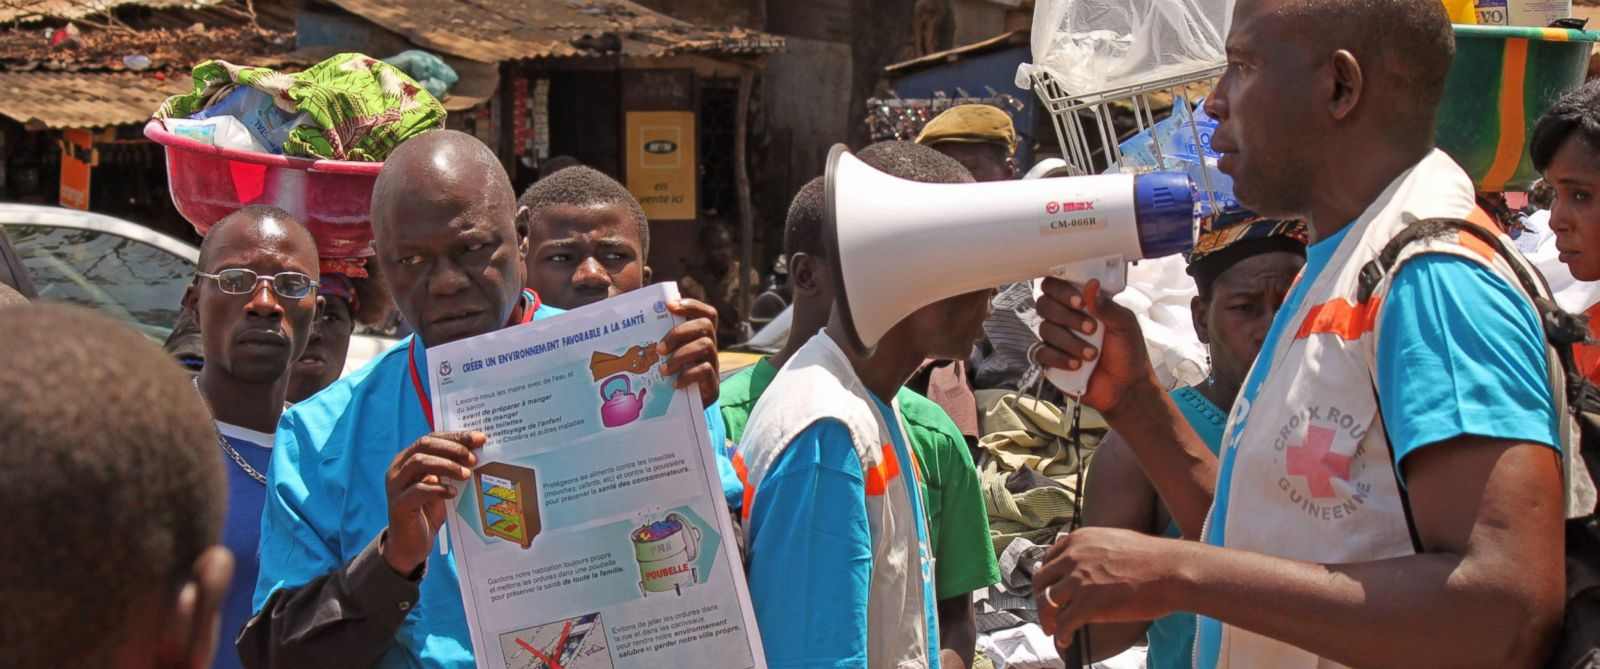 PHOTO: Health workers teach people about the Ebola virus and how to prevent infection, in Conakry, Guinea, March 31, 2014.